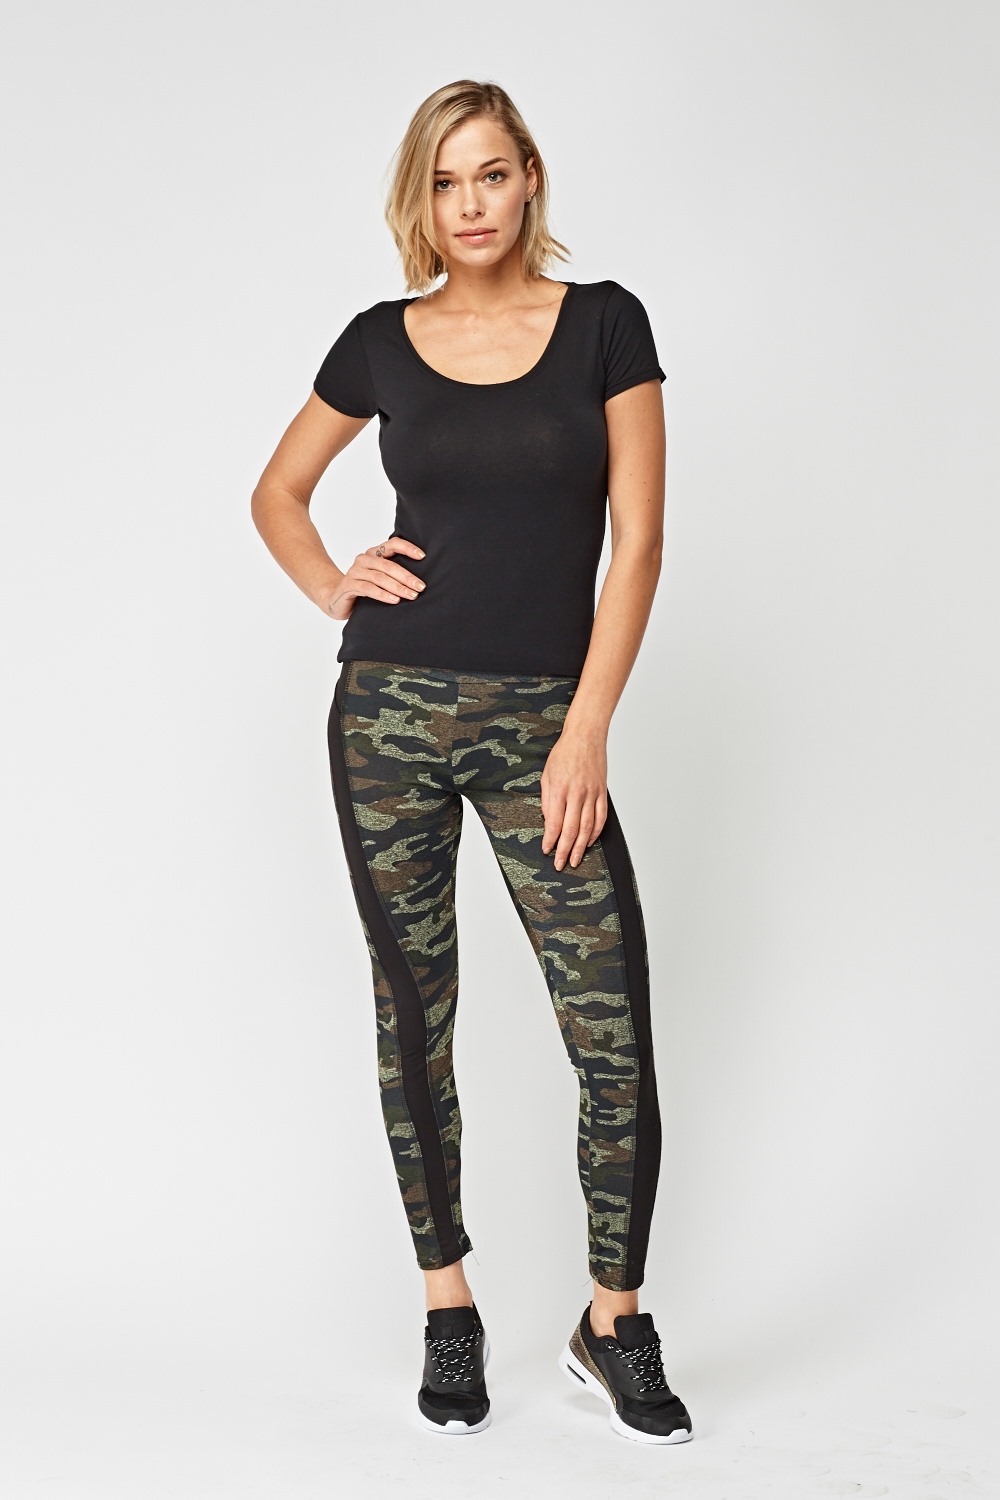 d83958eb43 Pack Of 2 Camouflage Sports Leggings - Just £5